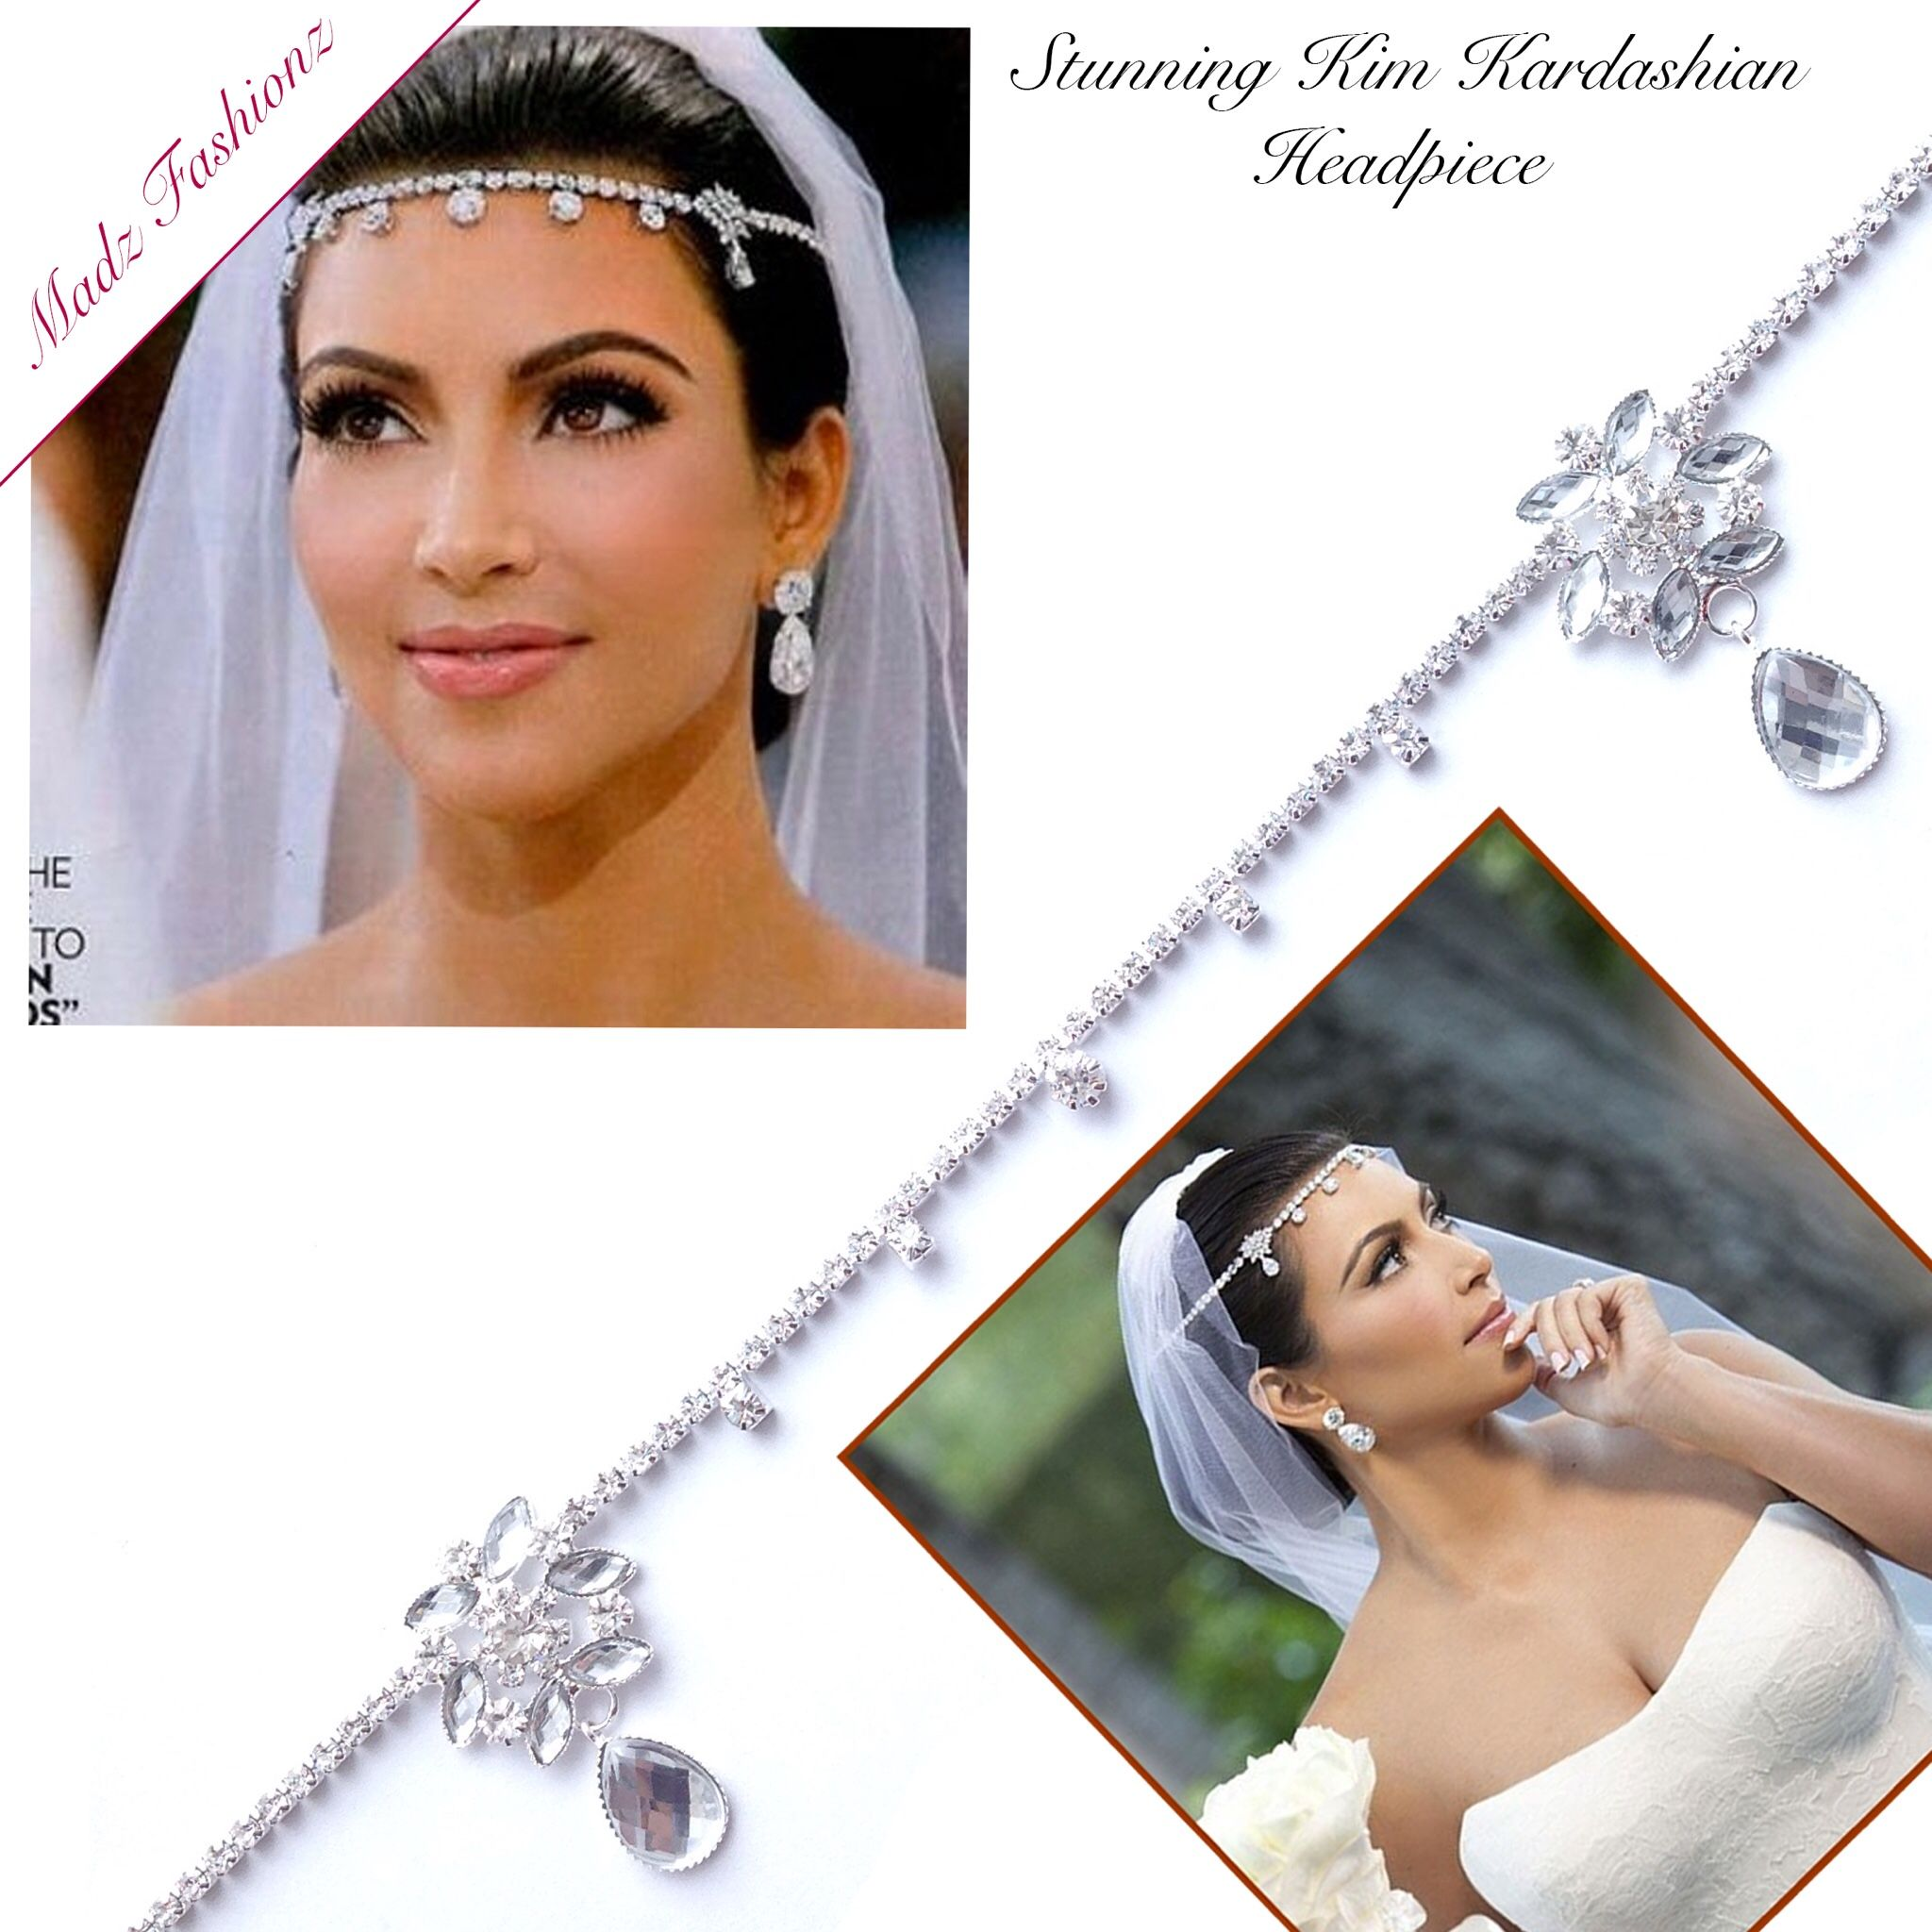 Kim Kardashian Inspired Wedding Bridal Headpiece Headband | Kim ...